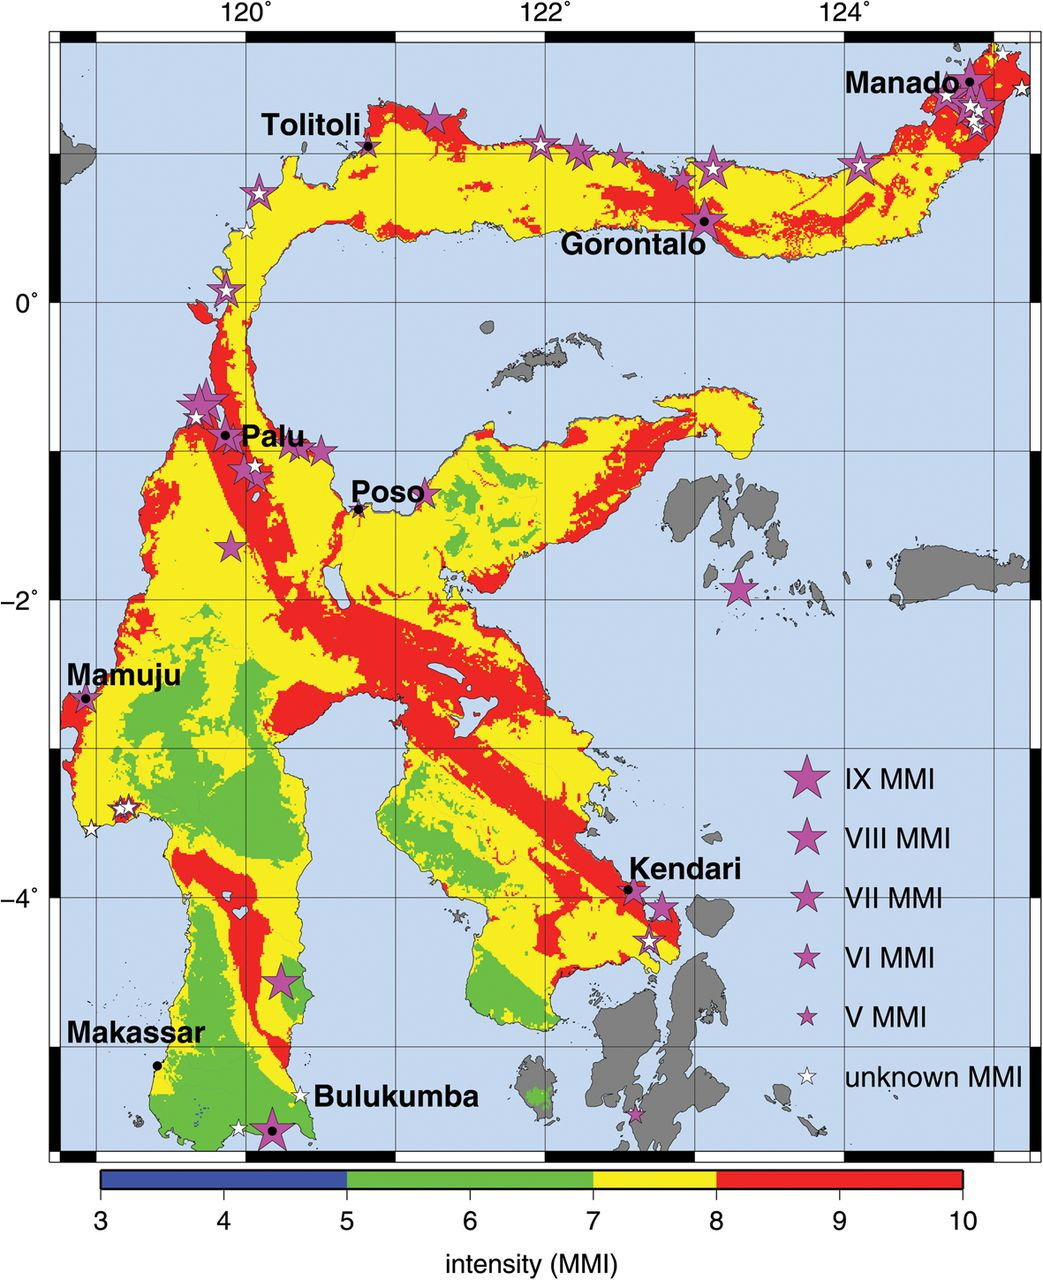 A probabilistic seismic hazard assessment for Sulawesi Indonesia